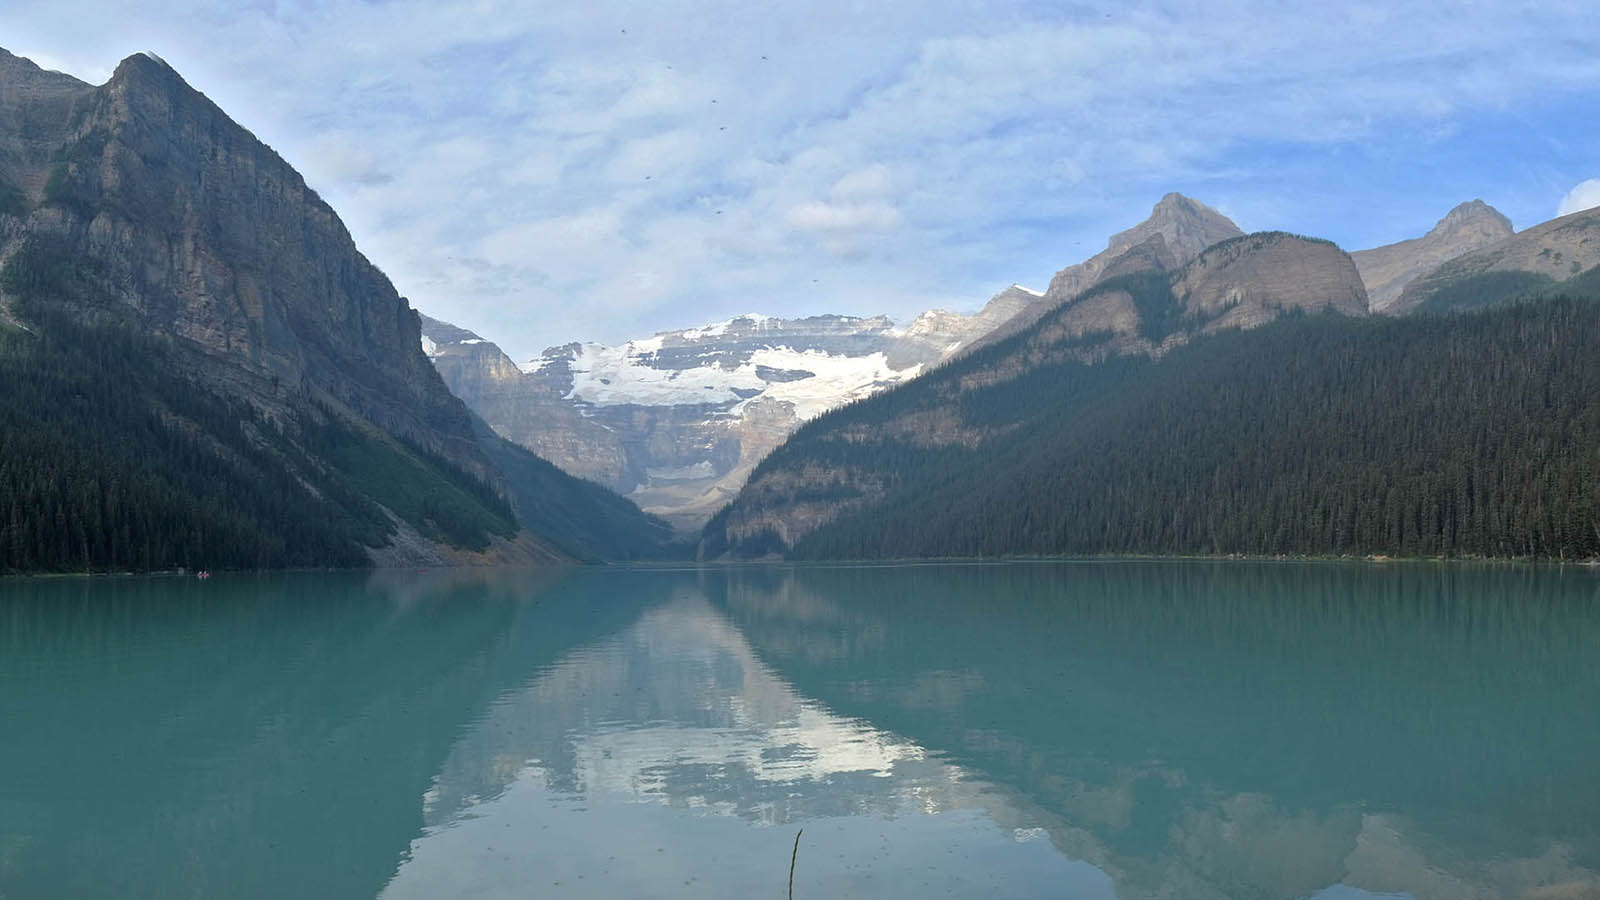 Lake Louise, Banff NP, Alberta - Ana Jaumendreu